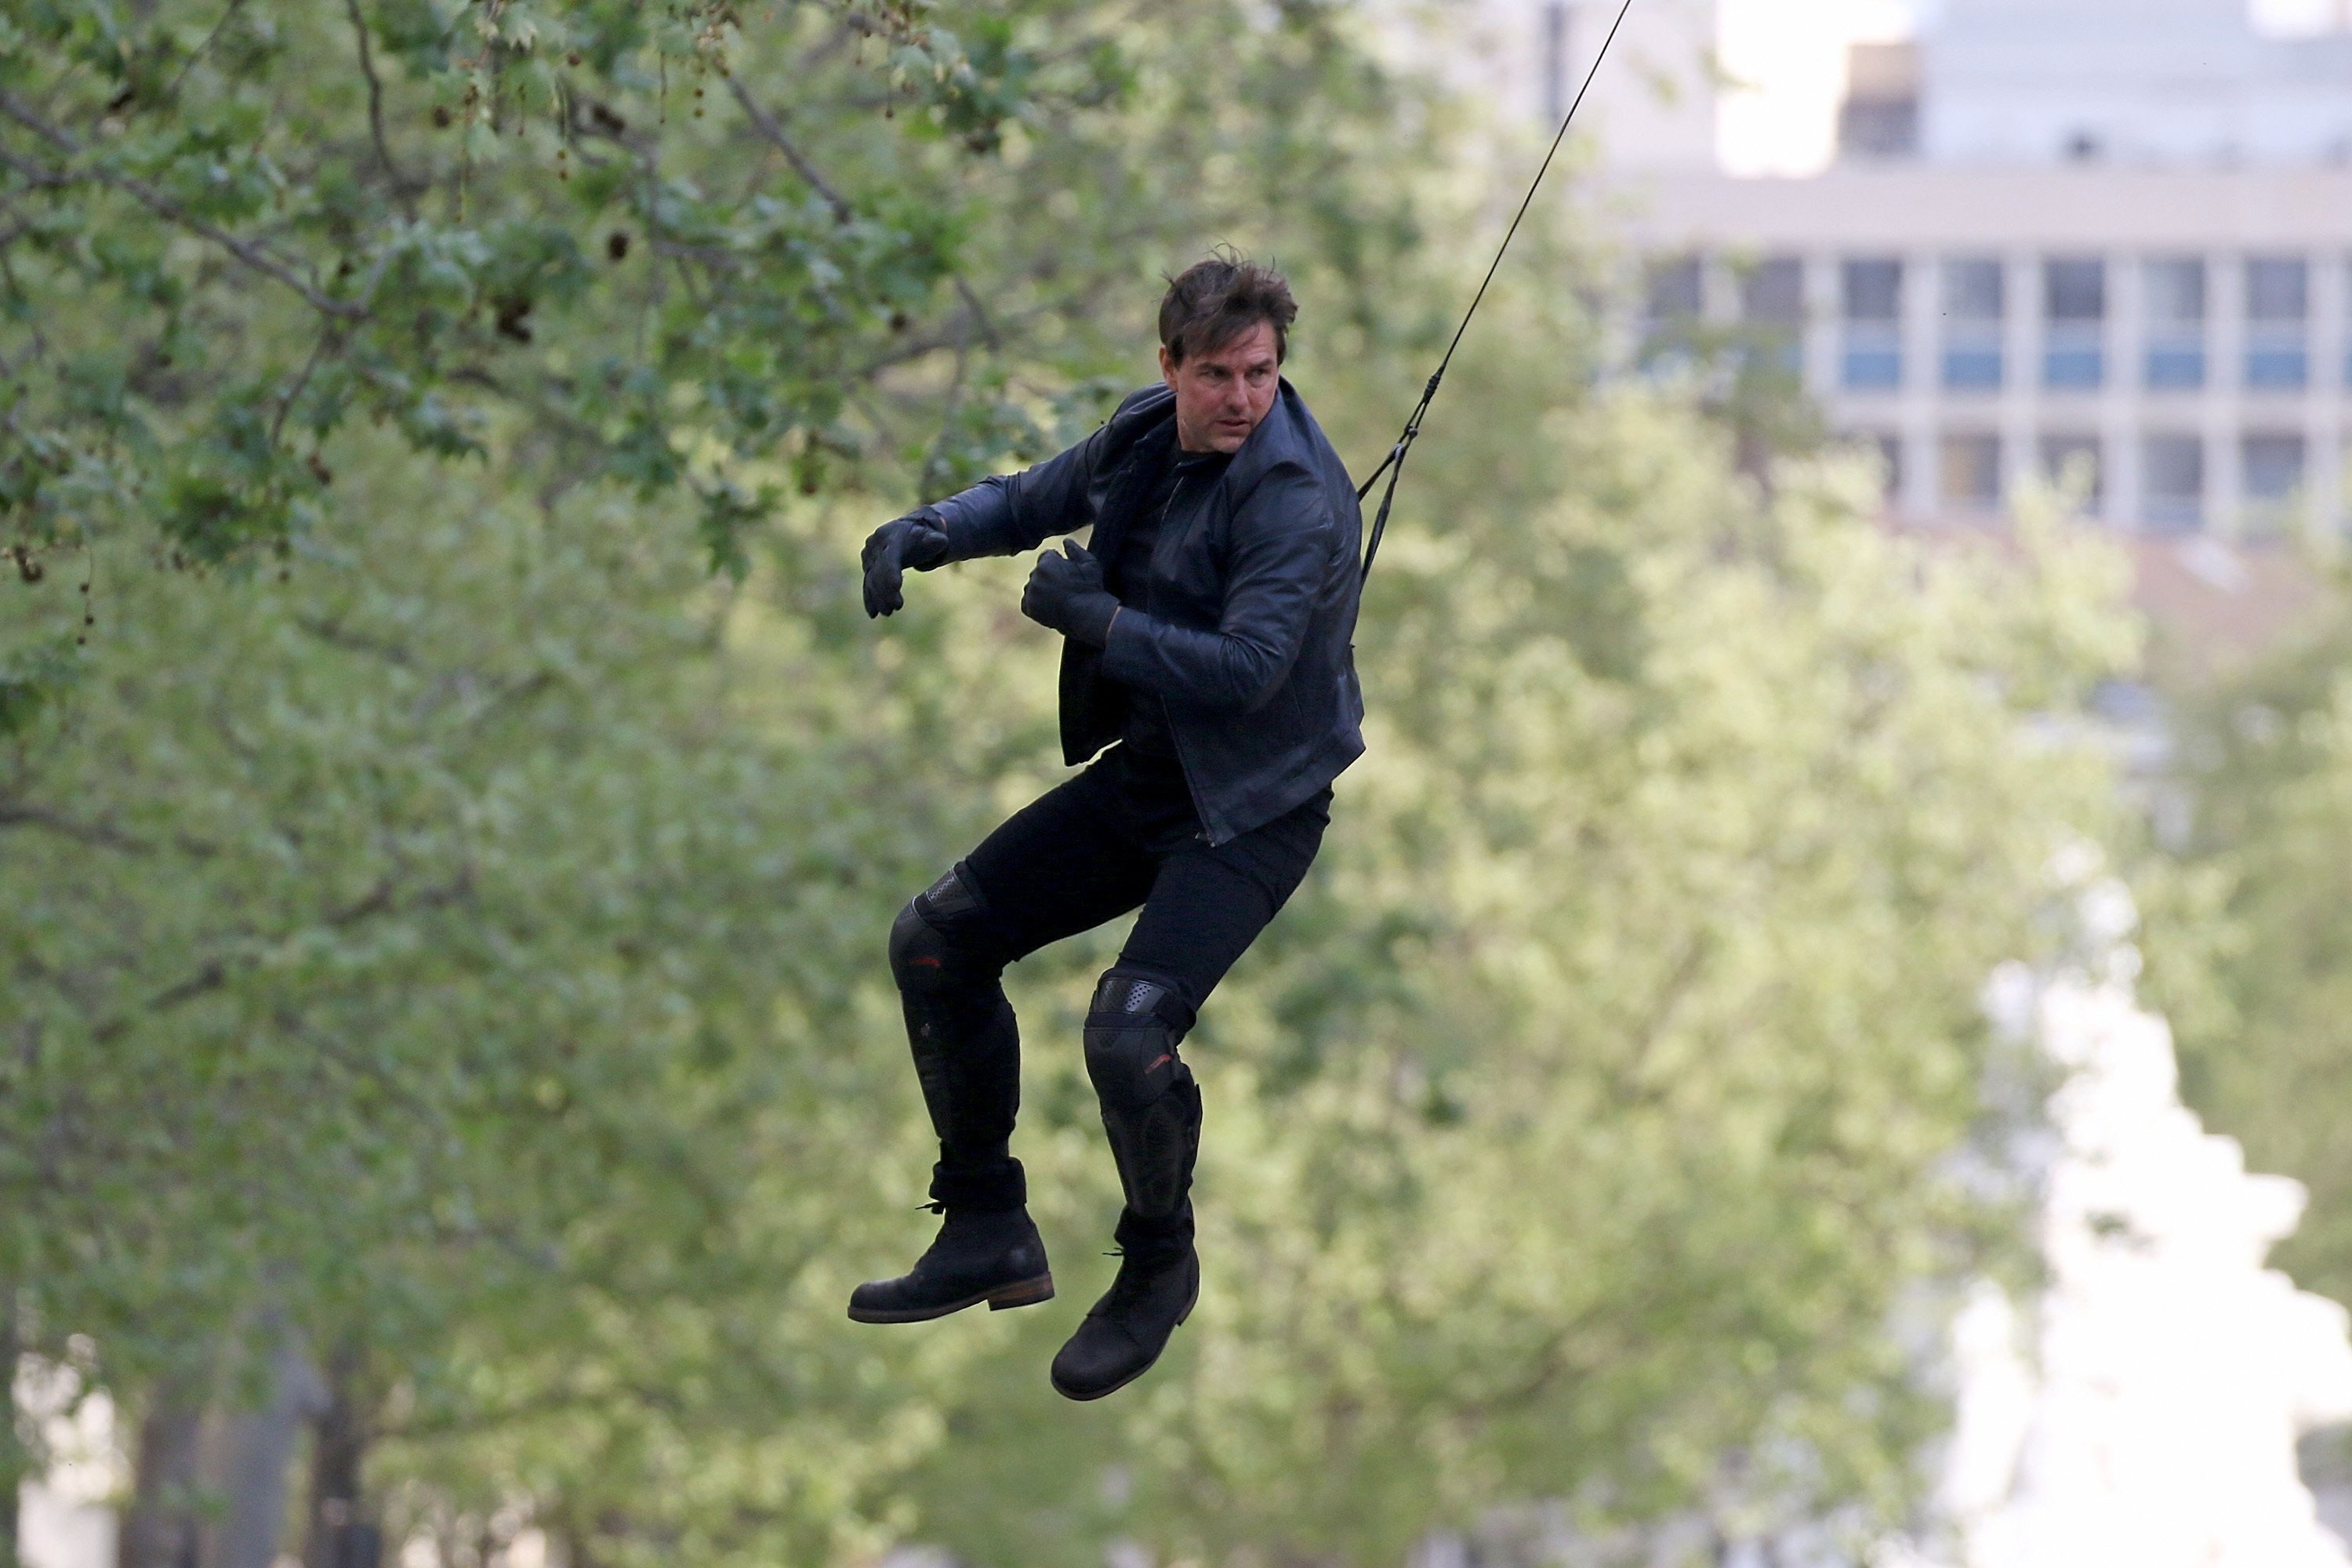 Actor Tom Cruise performs a stunt on set for the film 'Mission: Impossible - Fallout' in Paris, France, April 10, 2017.  (Getty Images)